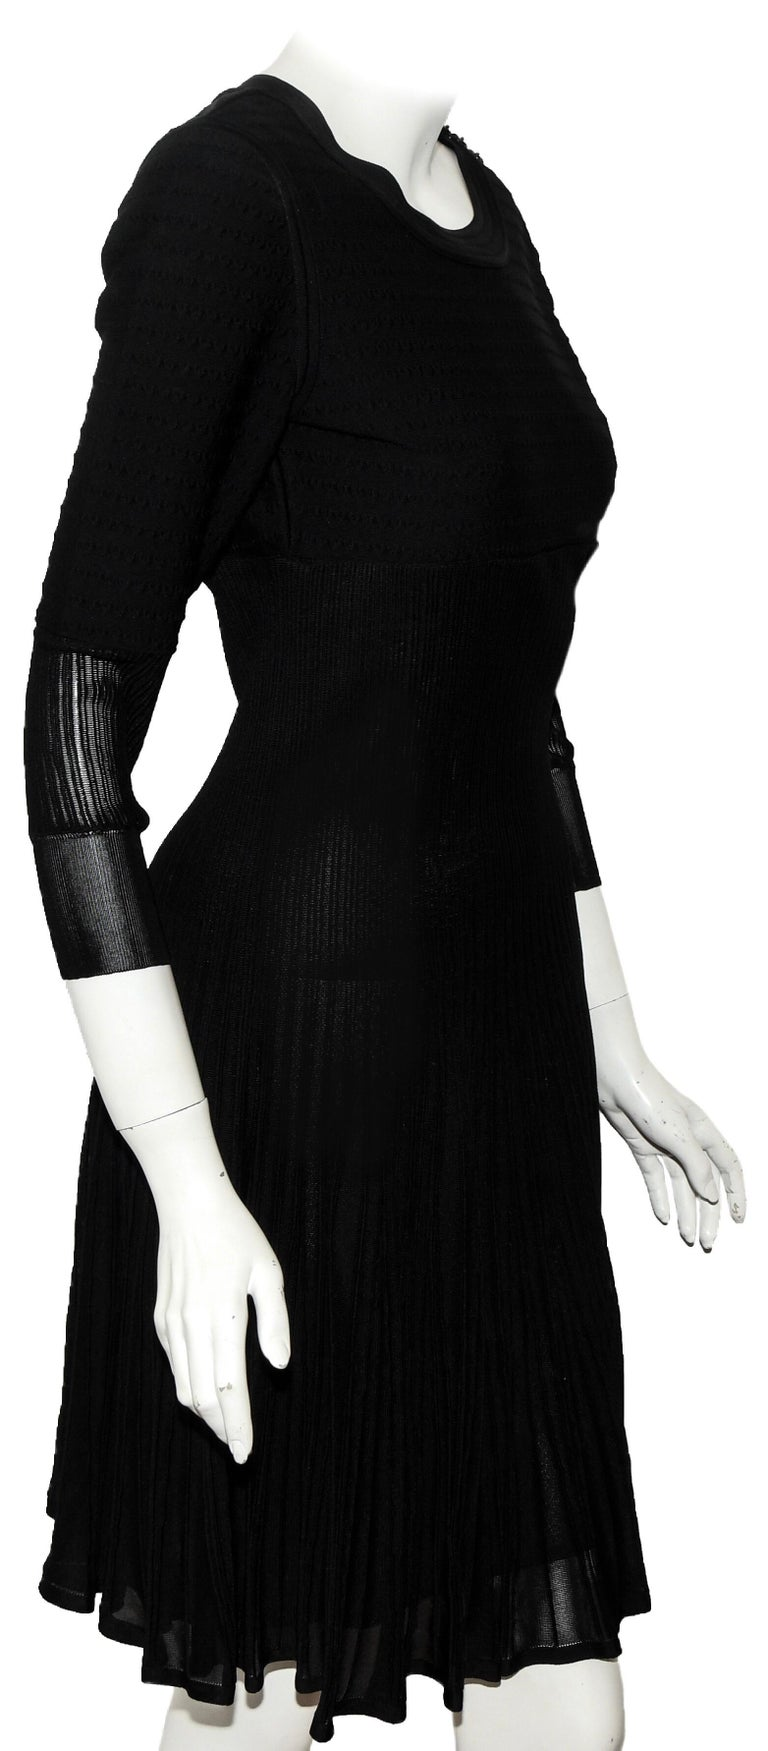 Women's Chanel Black Knit Silk Blend Pleated Long Sleeve Dress 2009 Cruise Collection For Sale